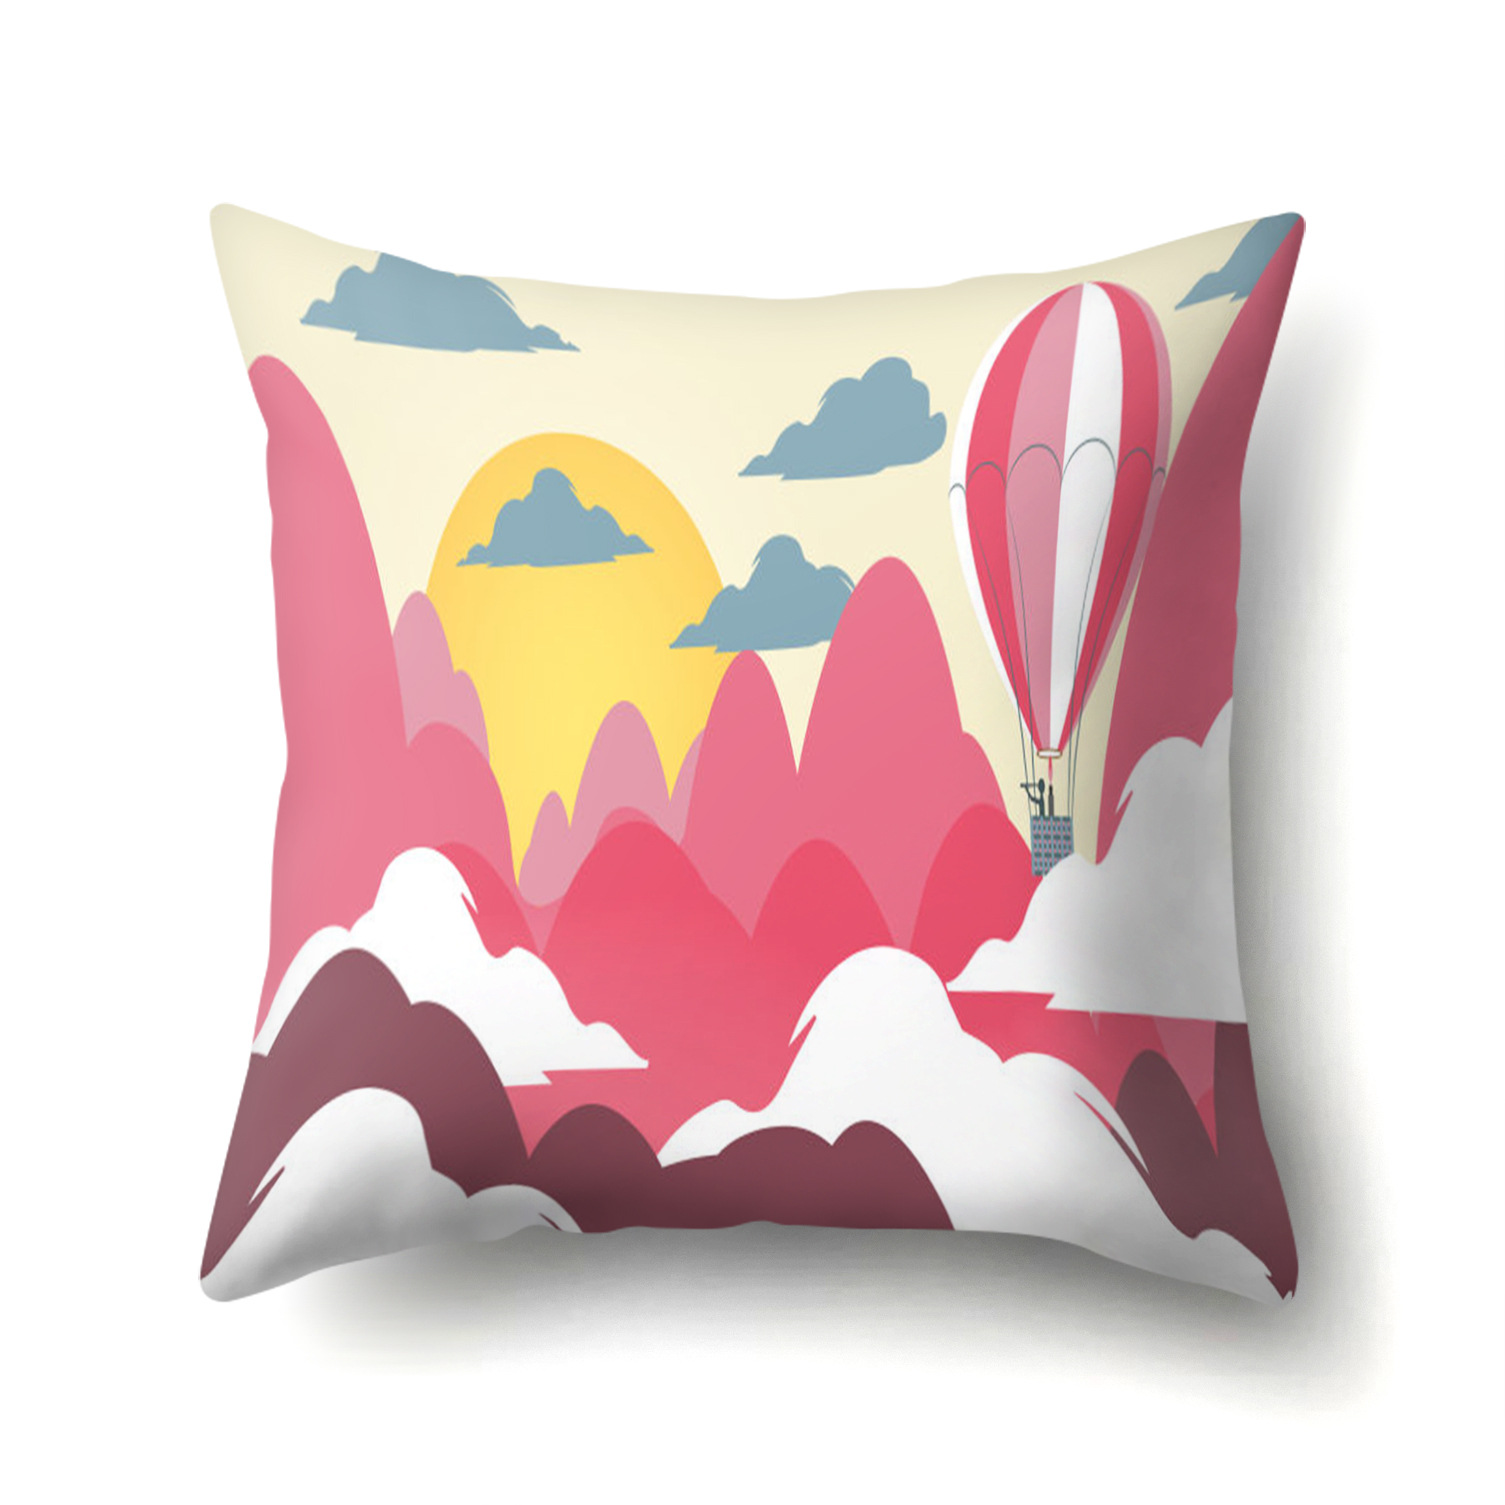 Landscape Pattern Cushion Cover City Countryside Beautiful Scenery Pillowcases Sofa Bed Living Room Decorative Covers Home Decor in Cushion Cover from Home Garden